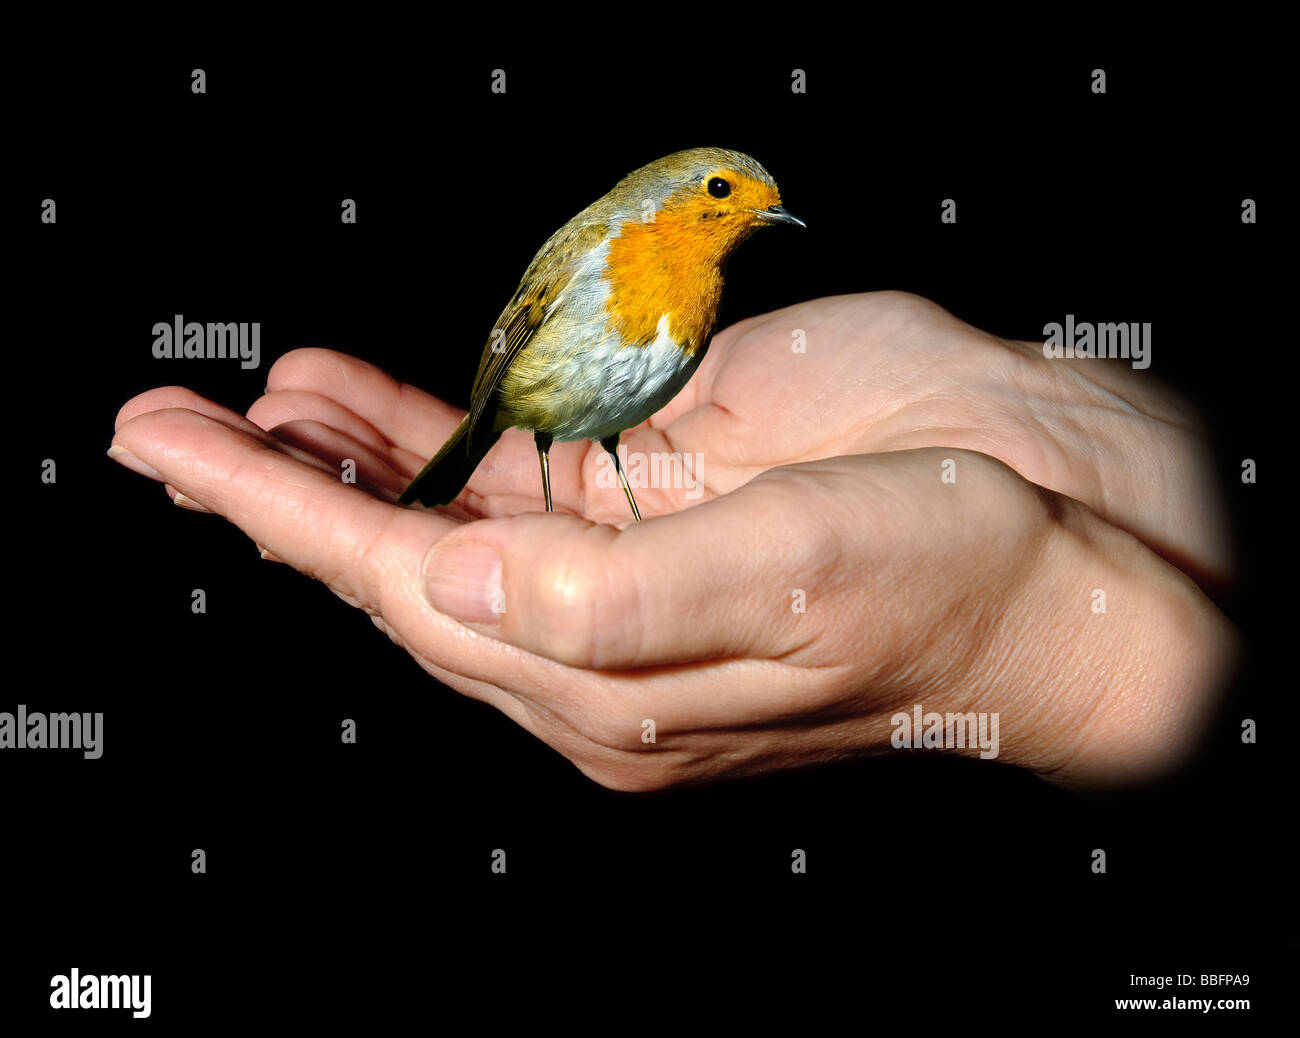 Robin In A Hand Stock Photos & Robin In A Hand Stock Images - Alamy